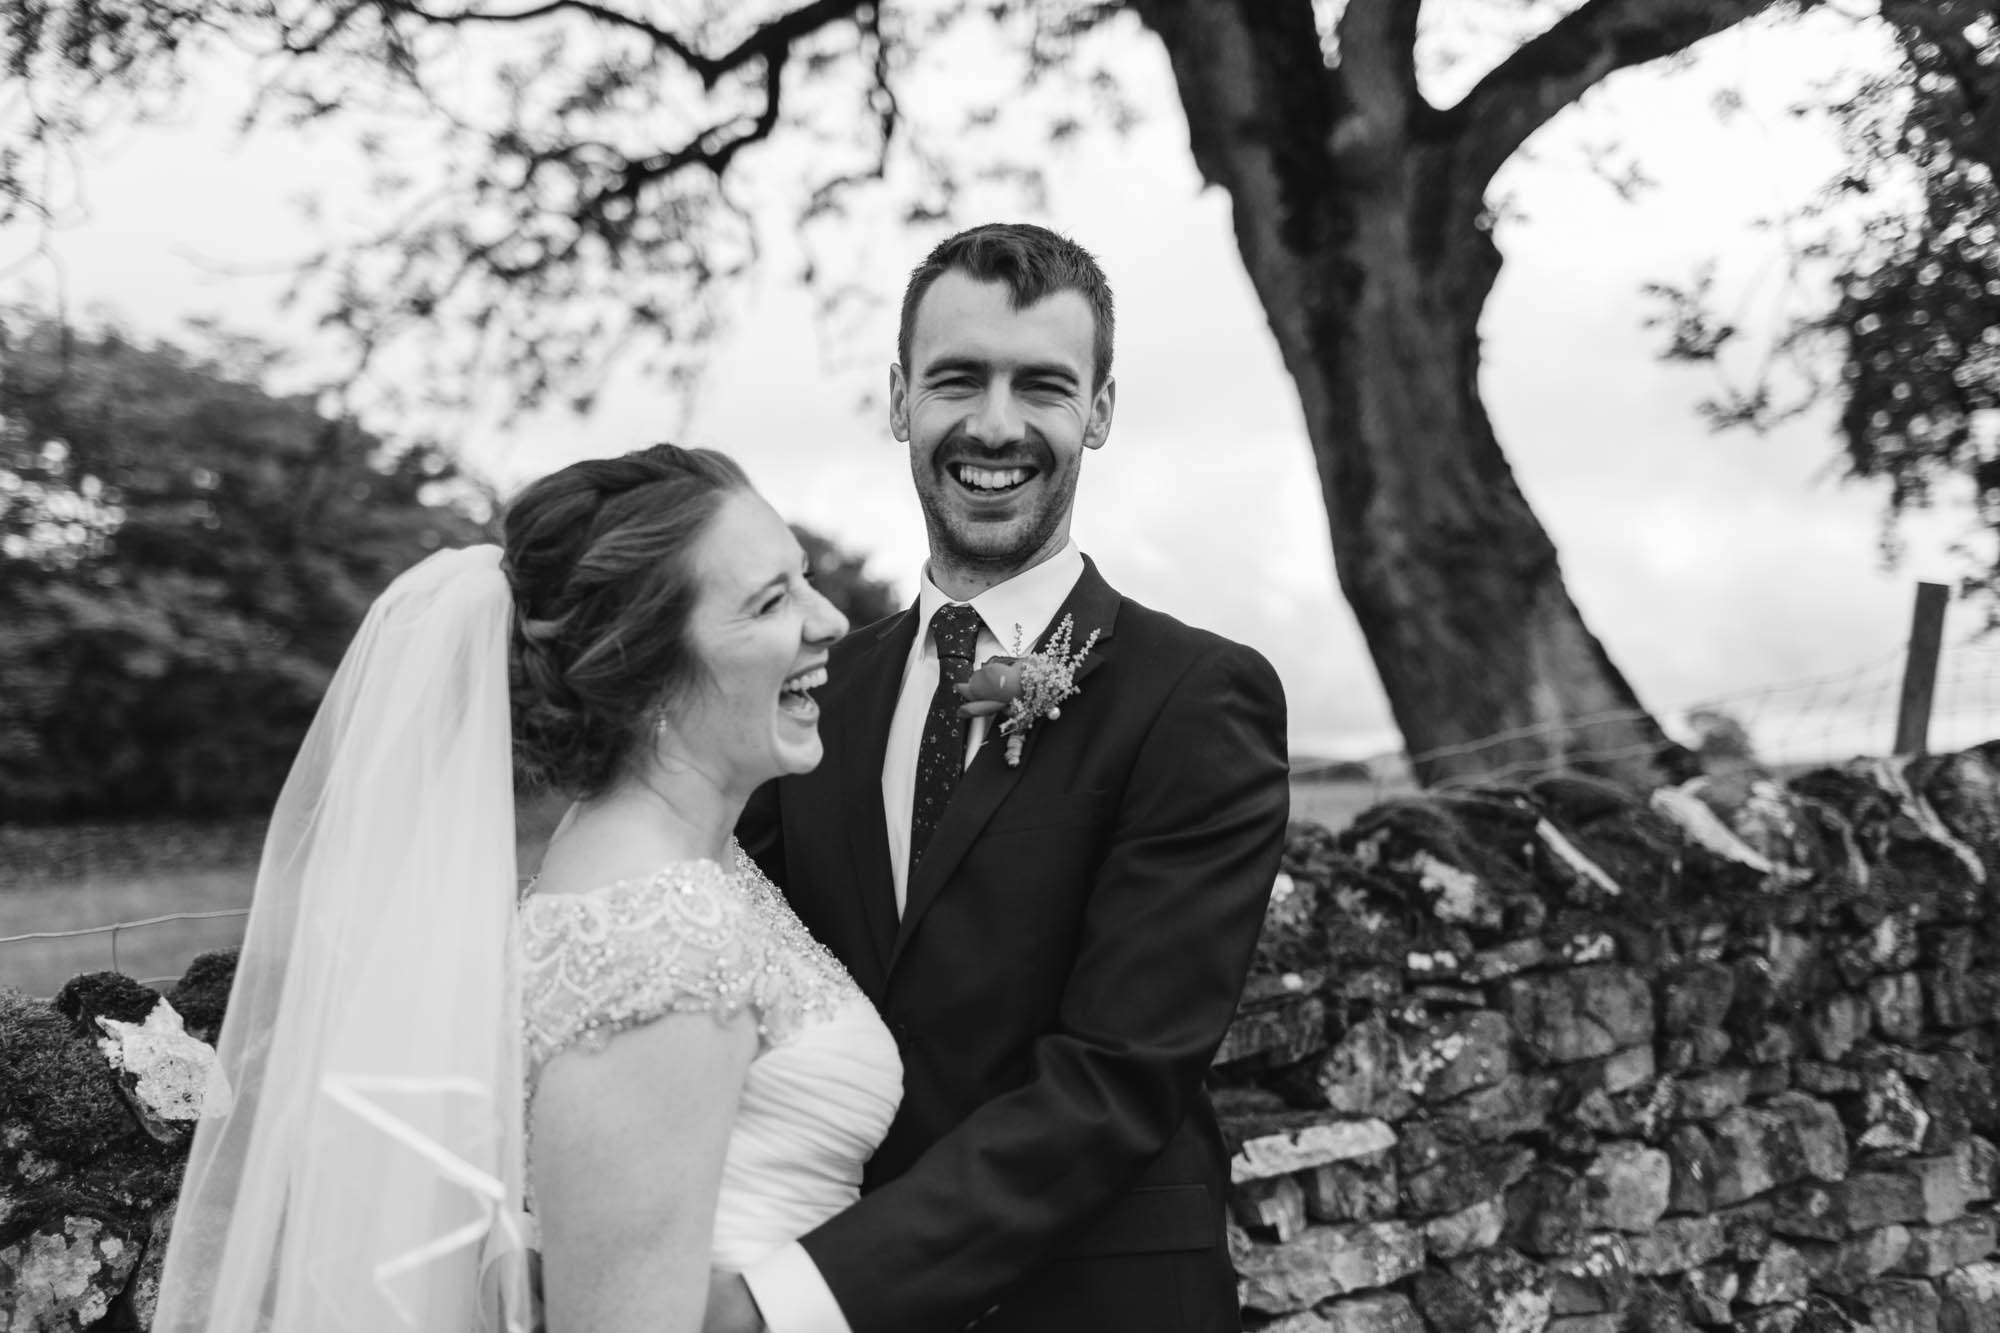 Photography from a North Yorkshire Wedding, Leeds, romantic, outdoor ceremony, DIY wedding, candid, relaxed fun photographer Huddersfield, York